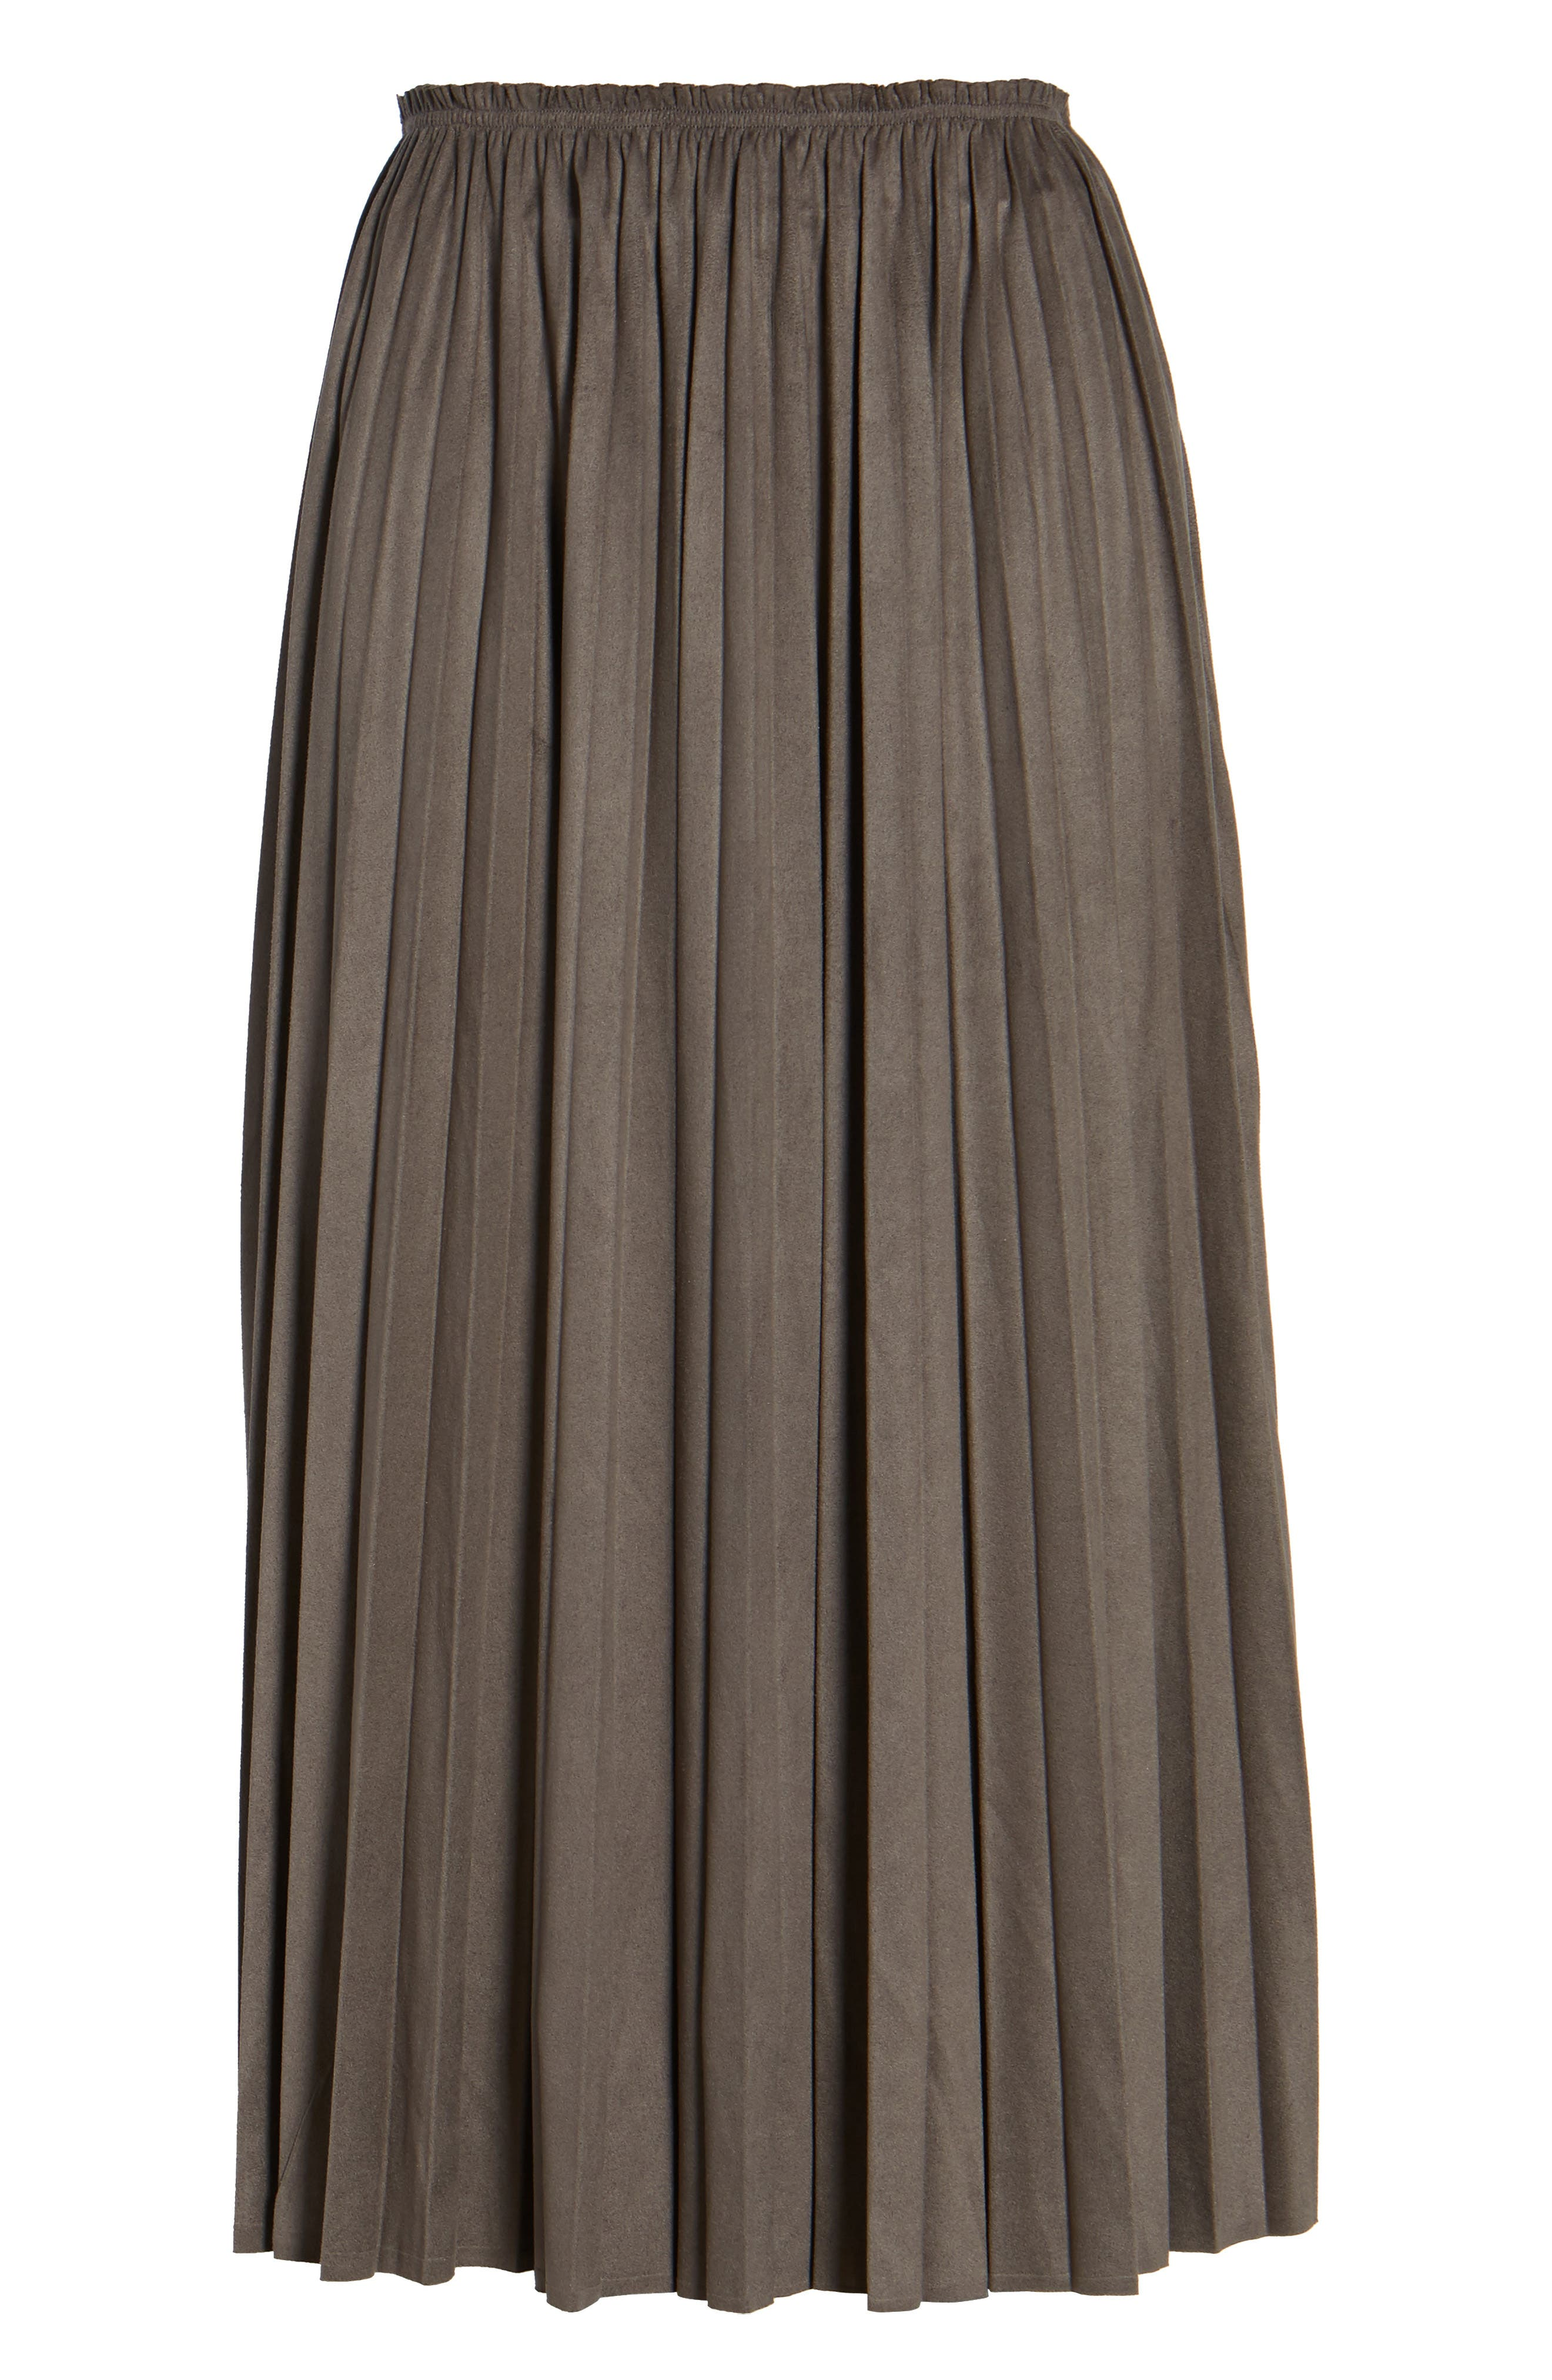 Pleated Faux Suede Midi Skirt,                             Alternate thumbnail 6, color,                             300